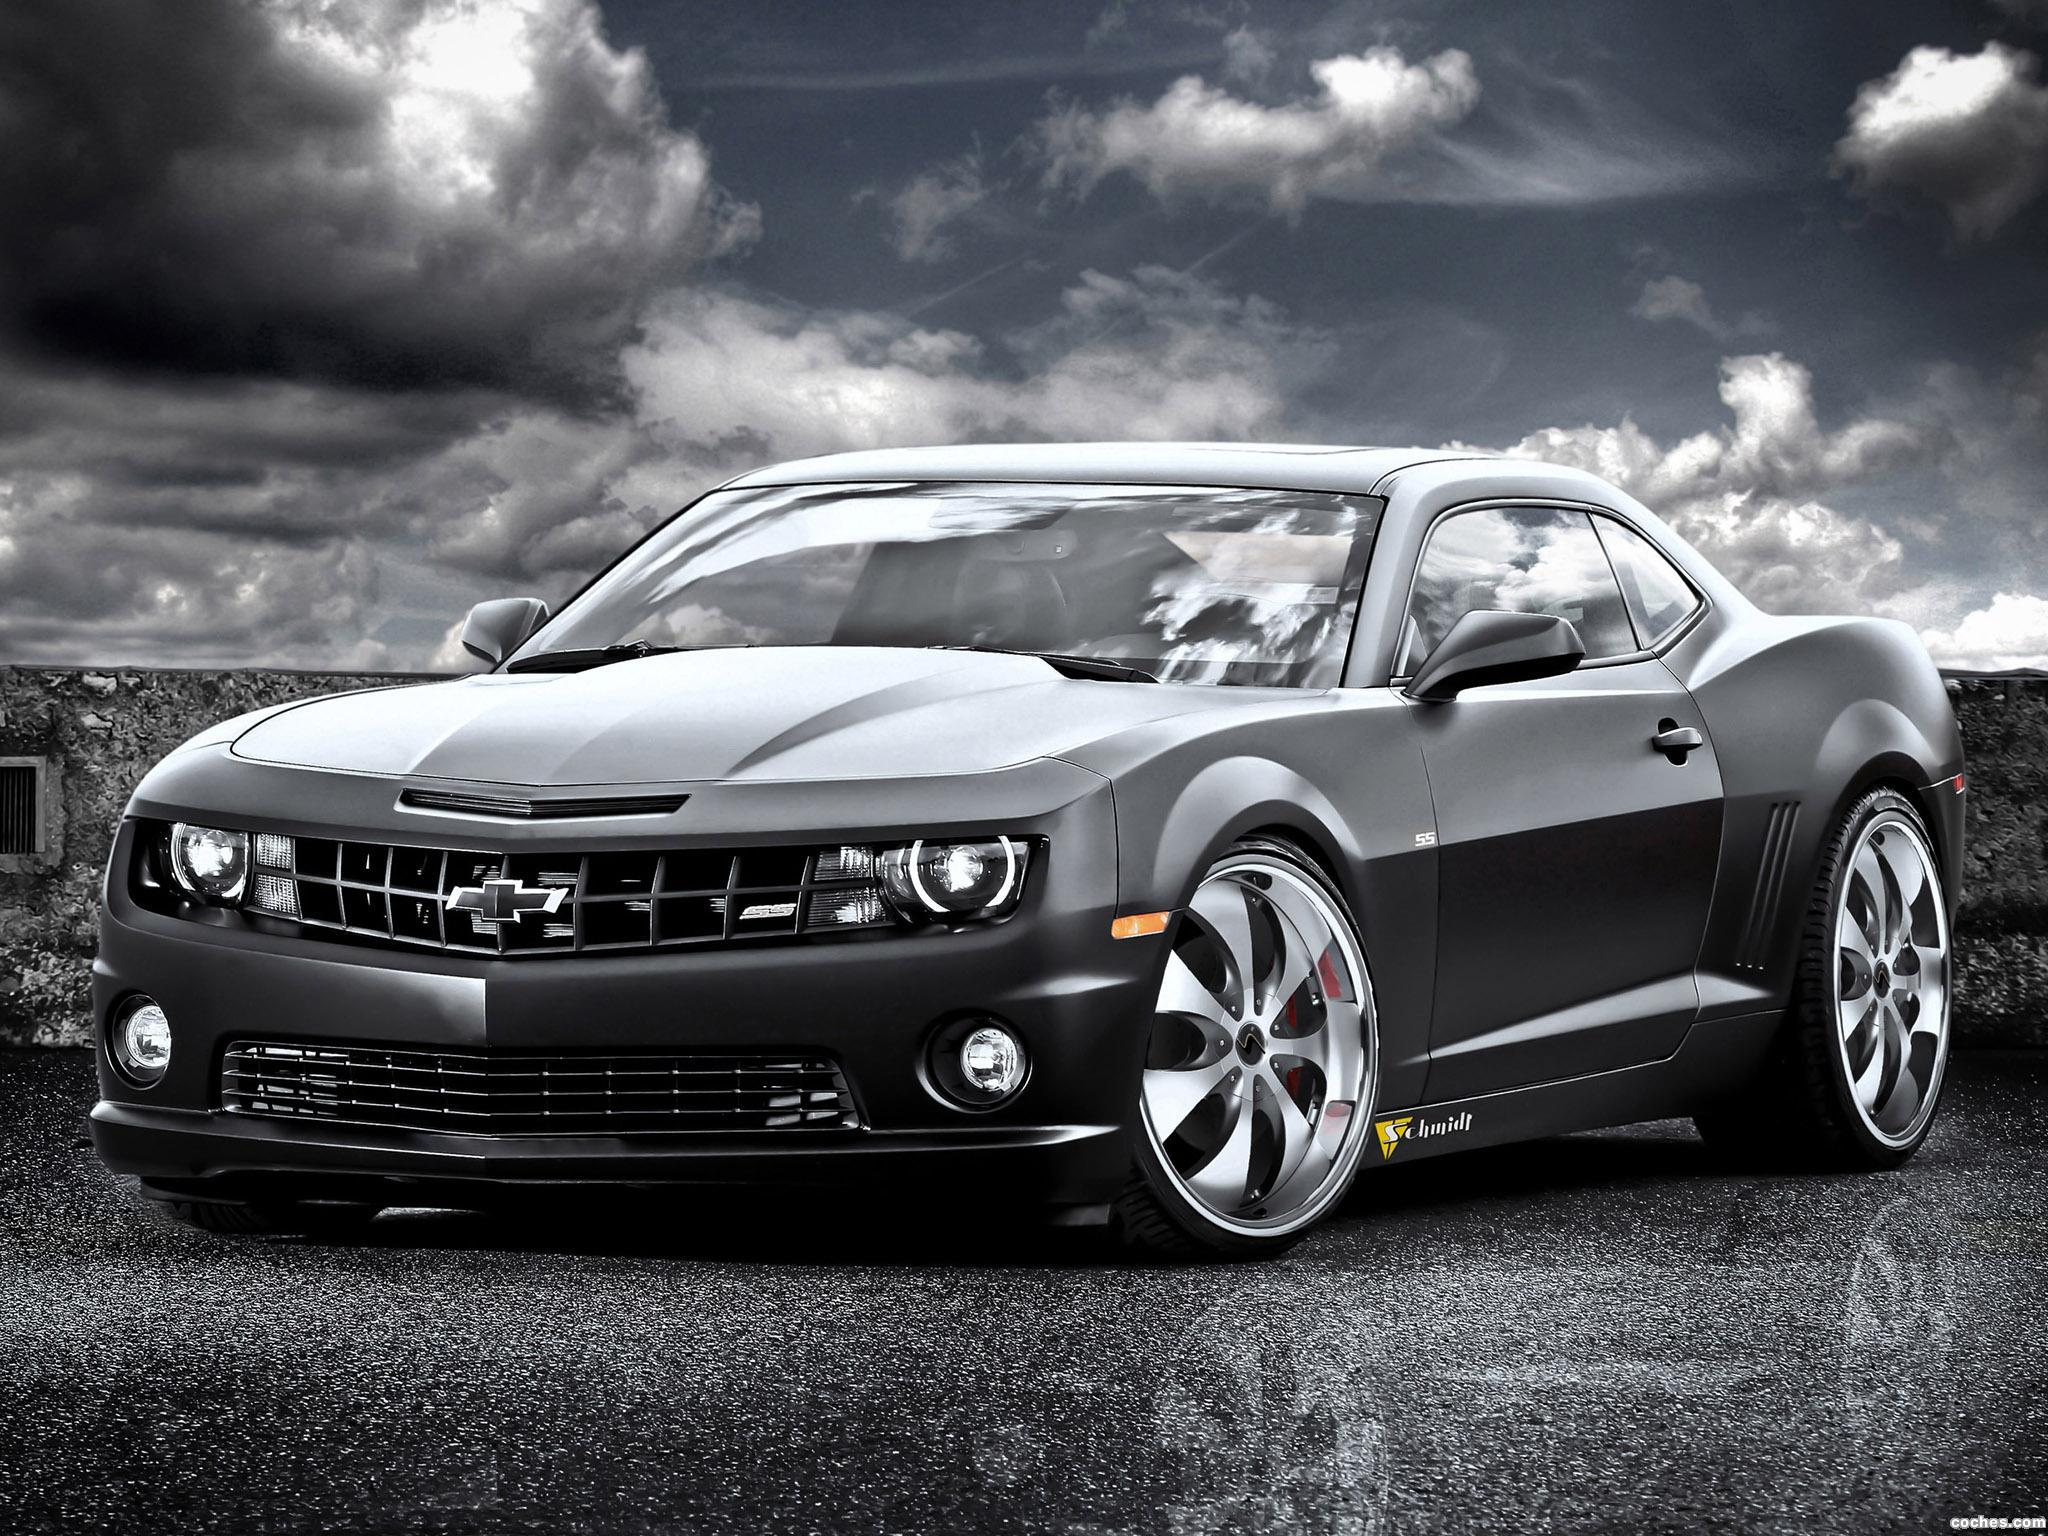 Foto 0 de Chevrolet Camaro SS Speed Box Black Cat 2011